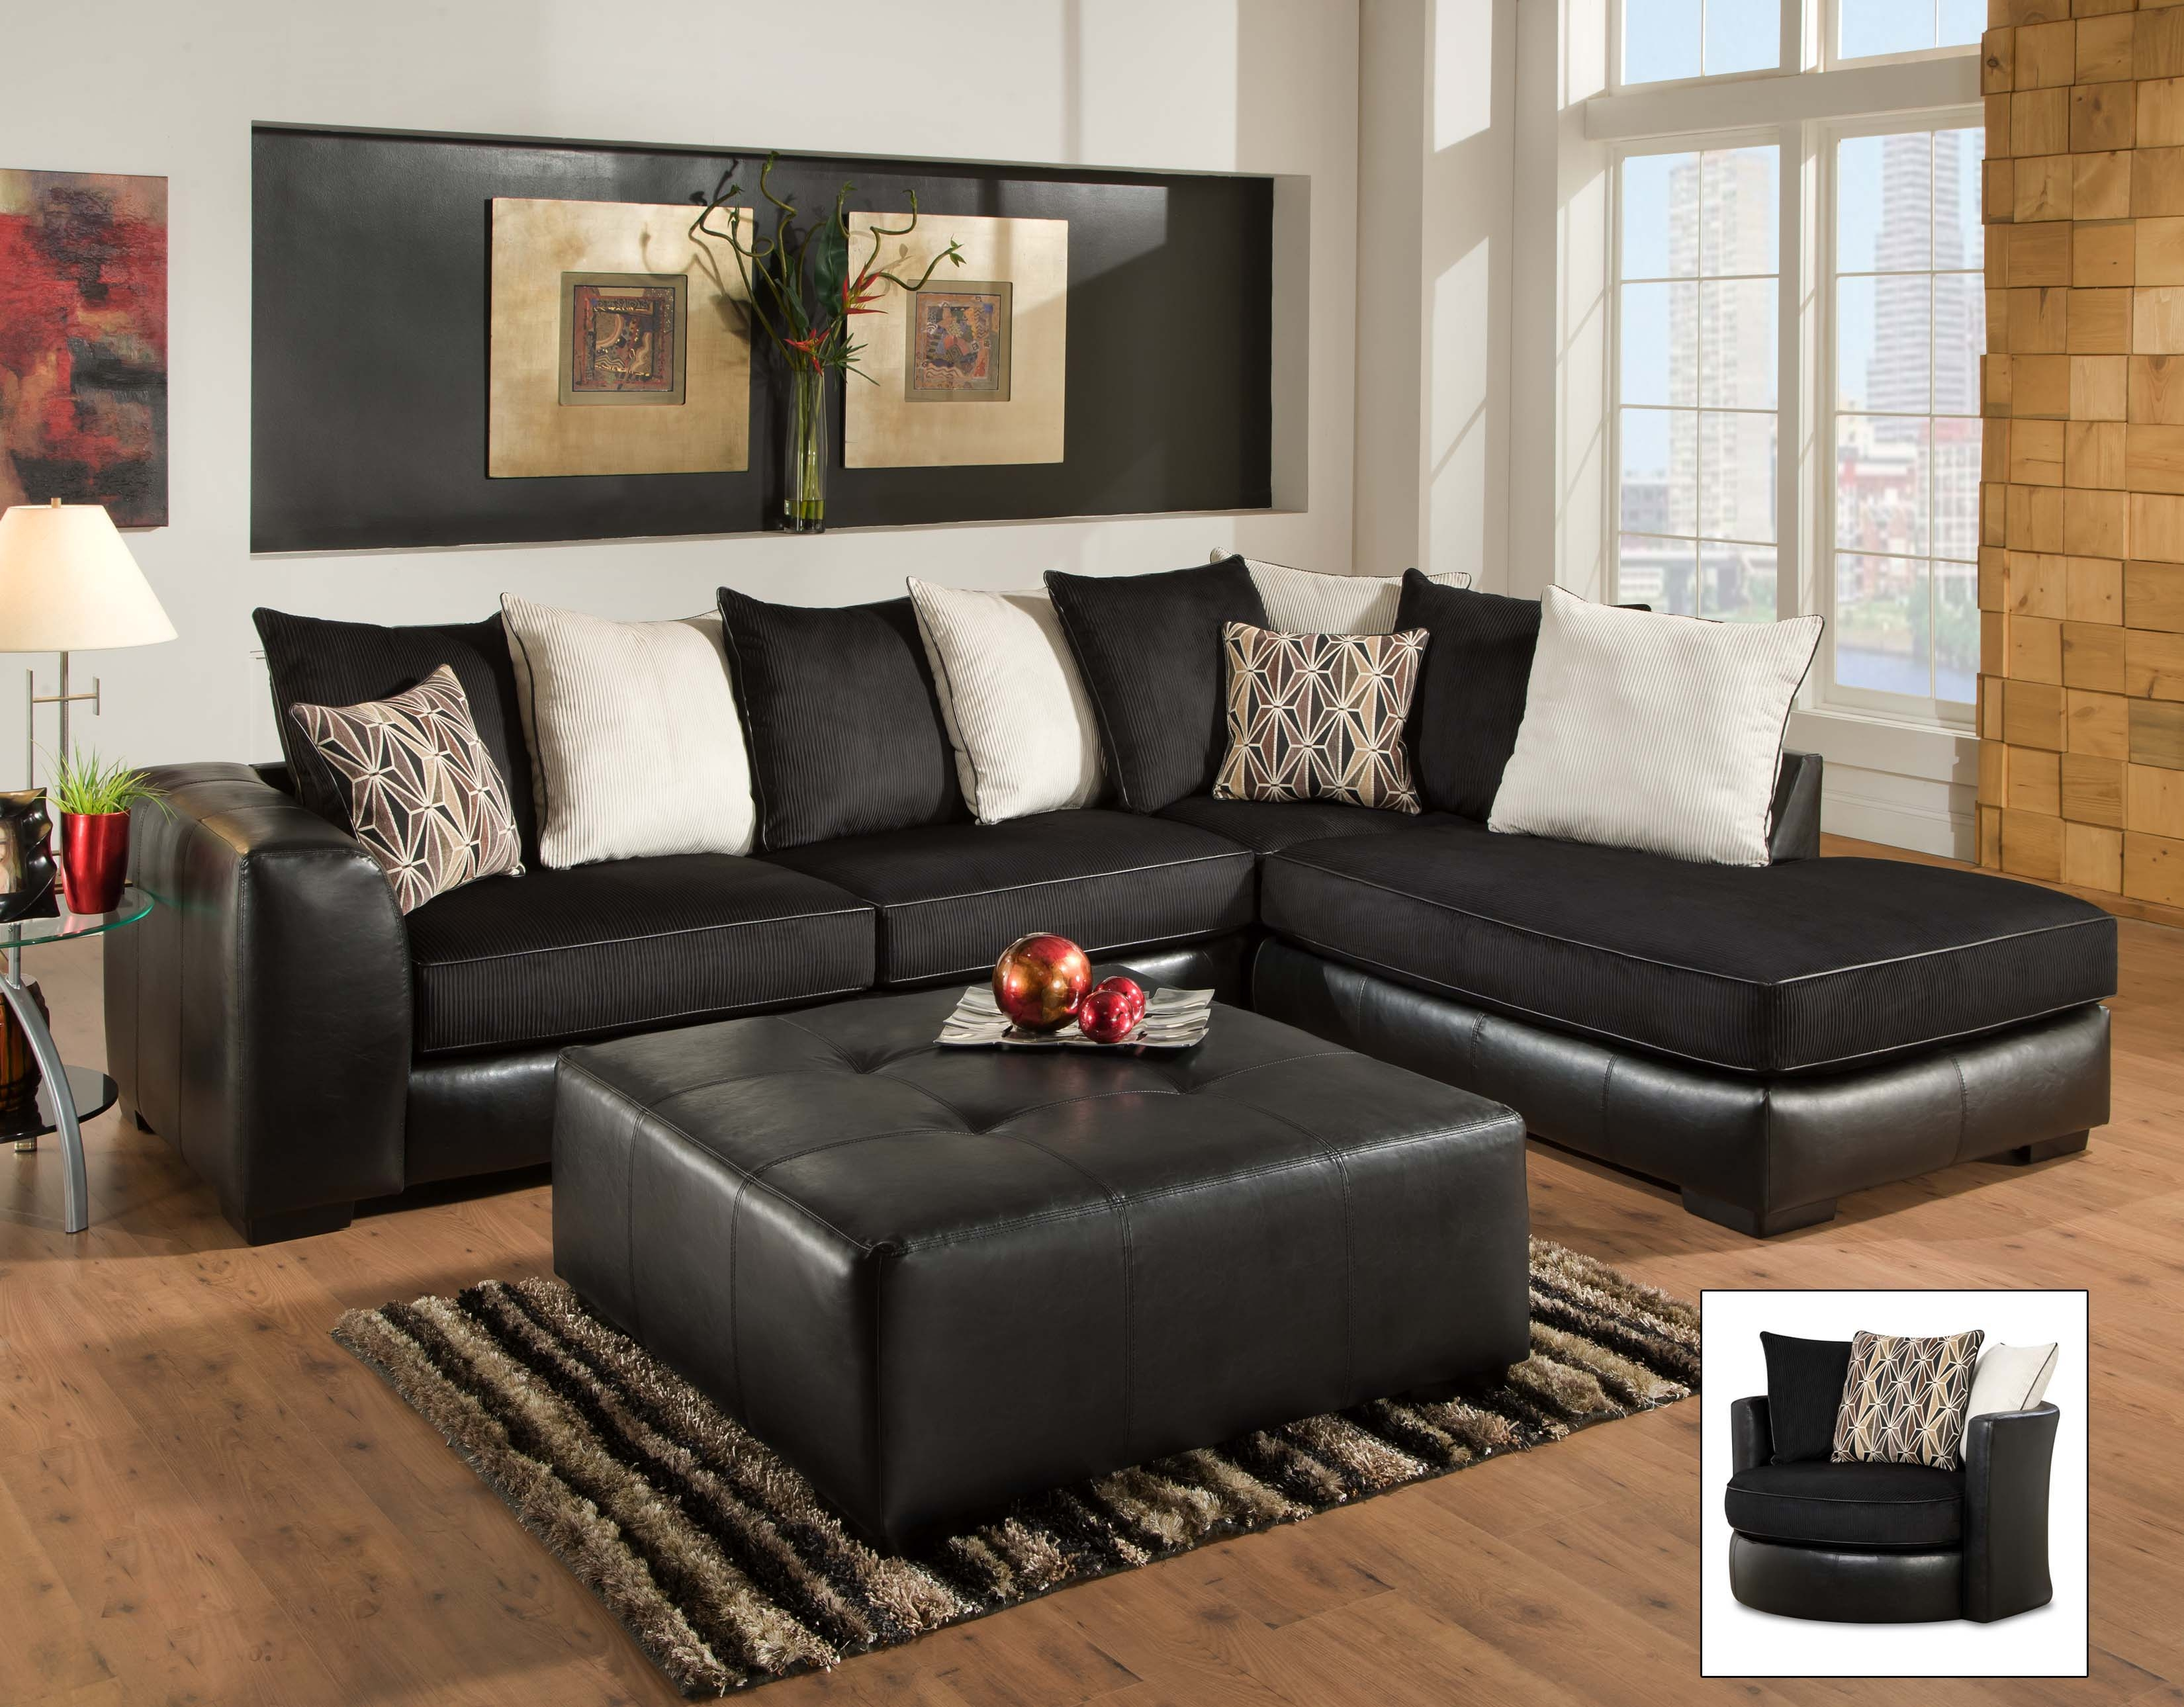 albany industries leather sofa large outdoor fjellkjeden